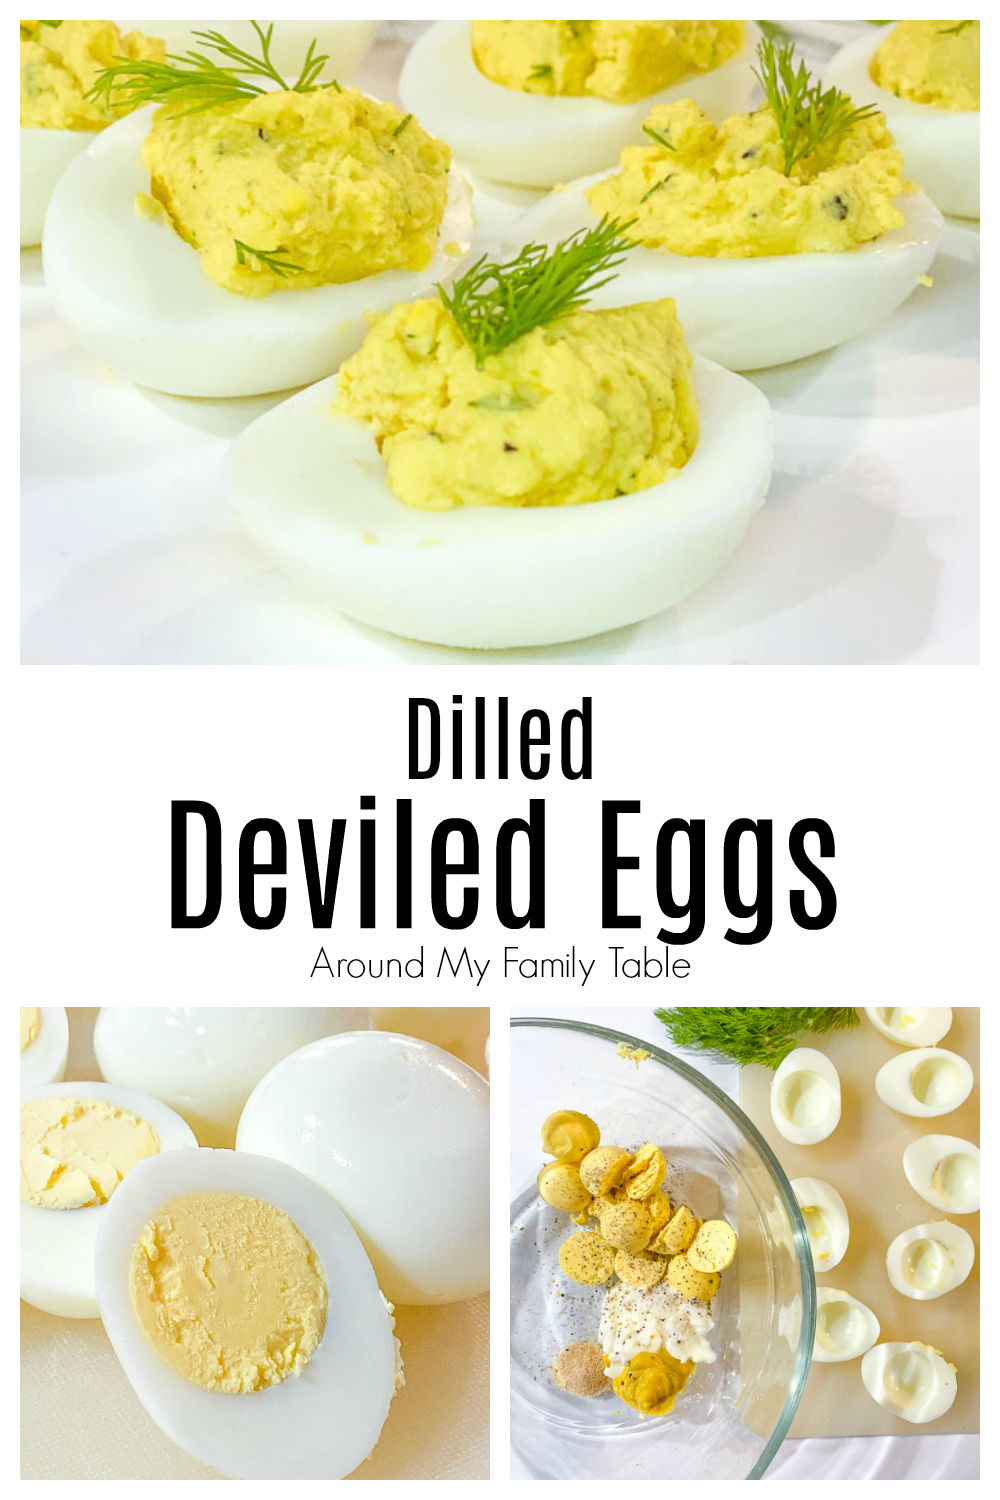 These Dilled Deviled Eggs are a kicked up version of traditional deviled eggs.  Fresh dill and garlic make these eggs irresistible.   via @slingmama